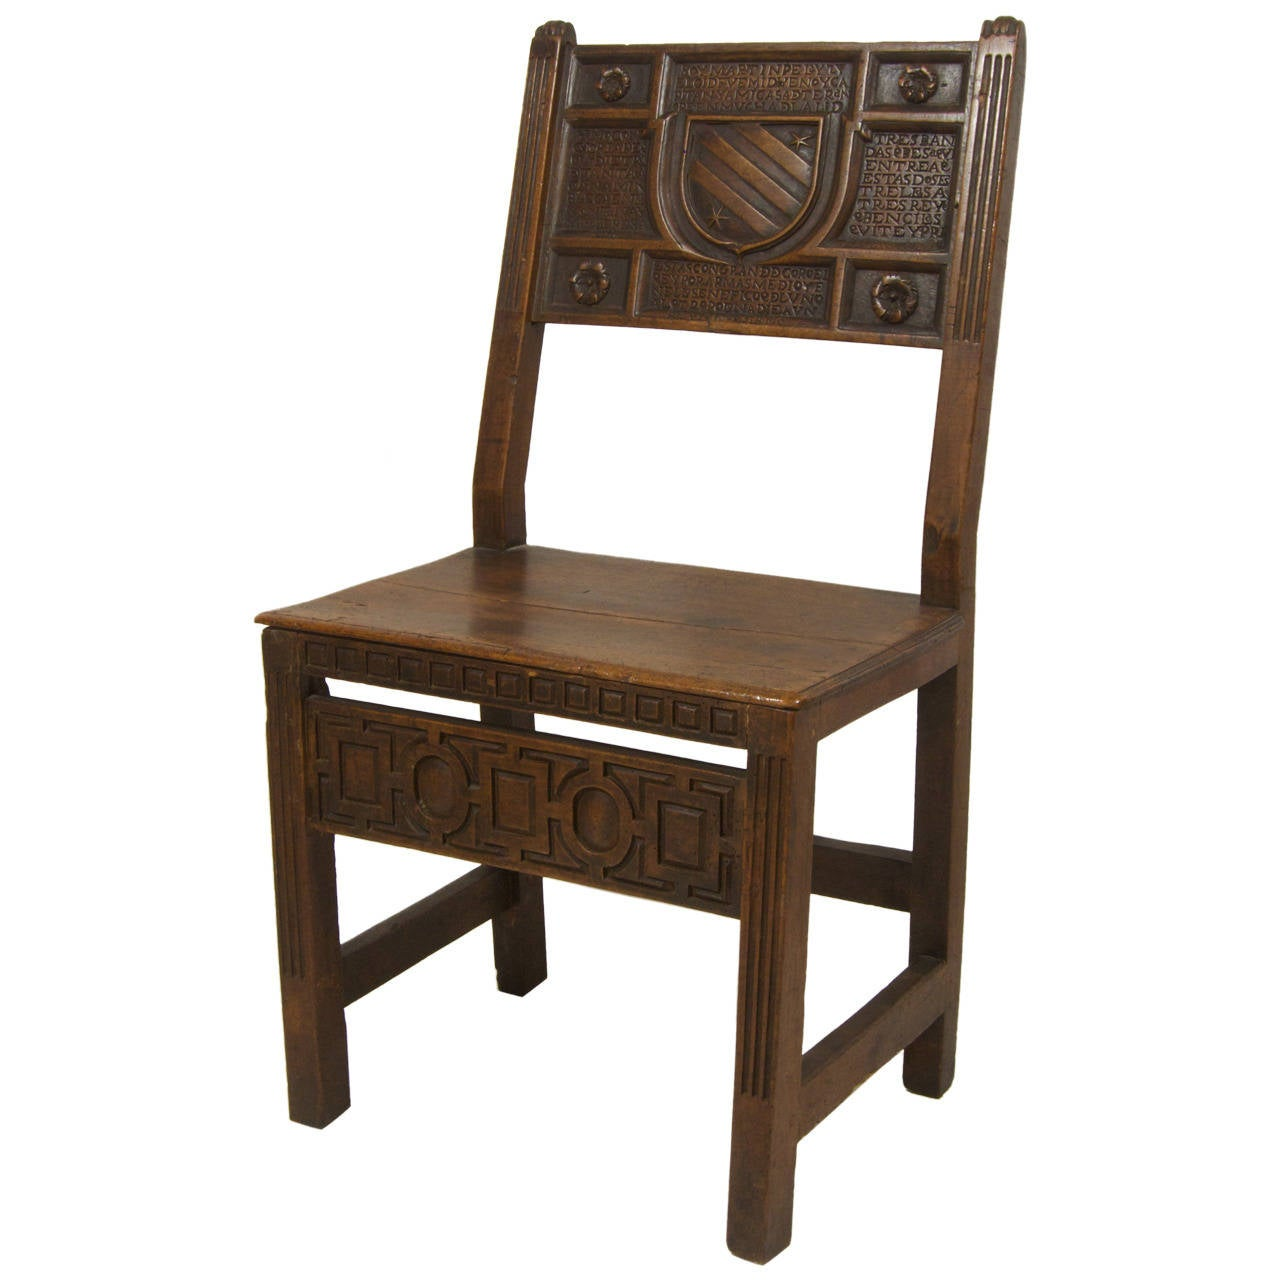 Spanish Chair 16th Century For Sale At 1stdibs